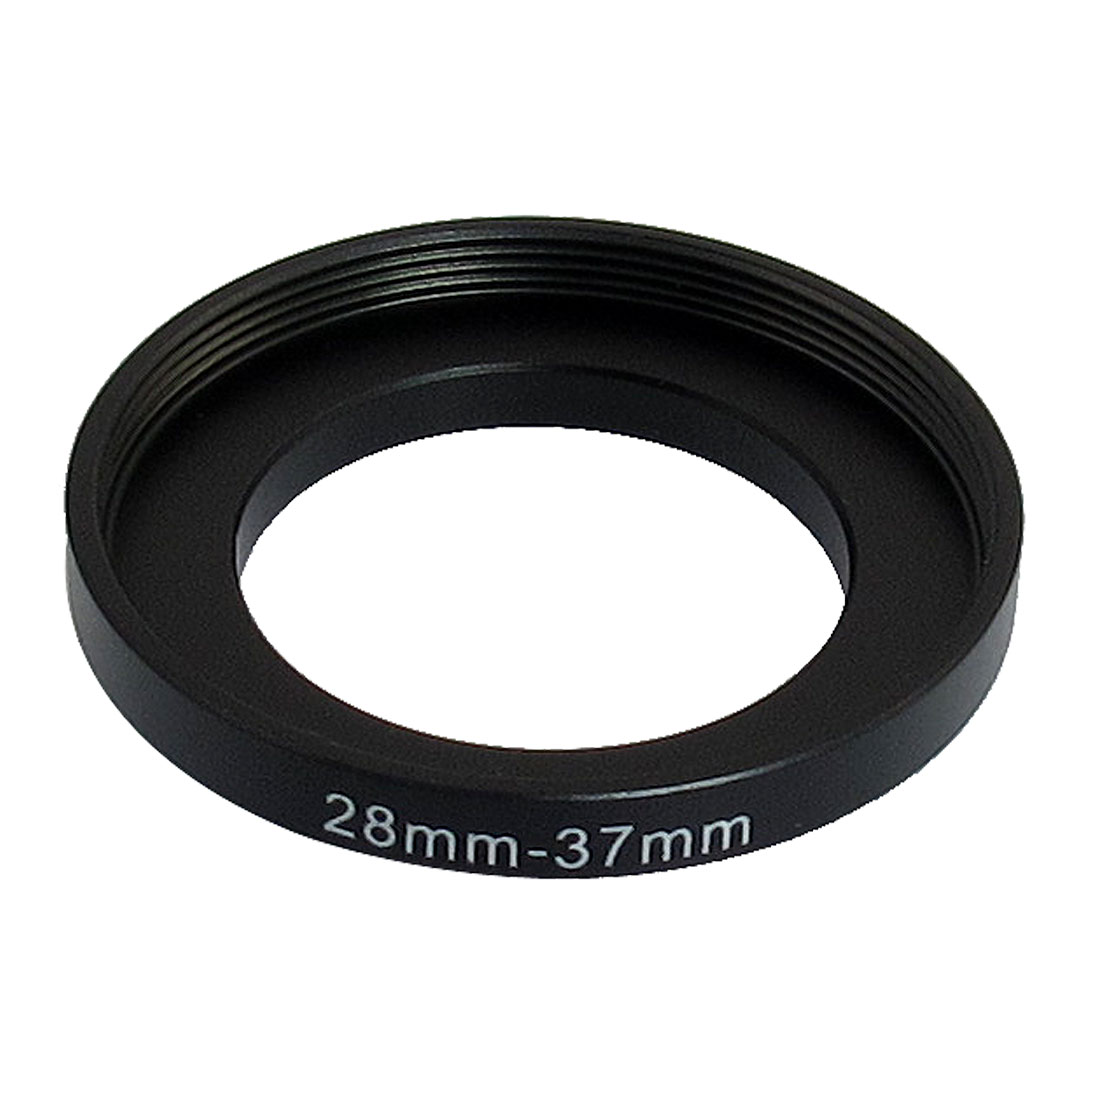 28mm-37mm 28mm to 37mm Black Step up Ring Adapter for Camera